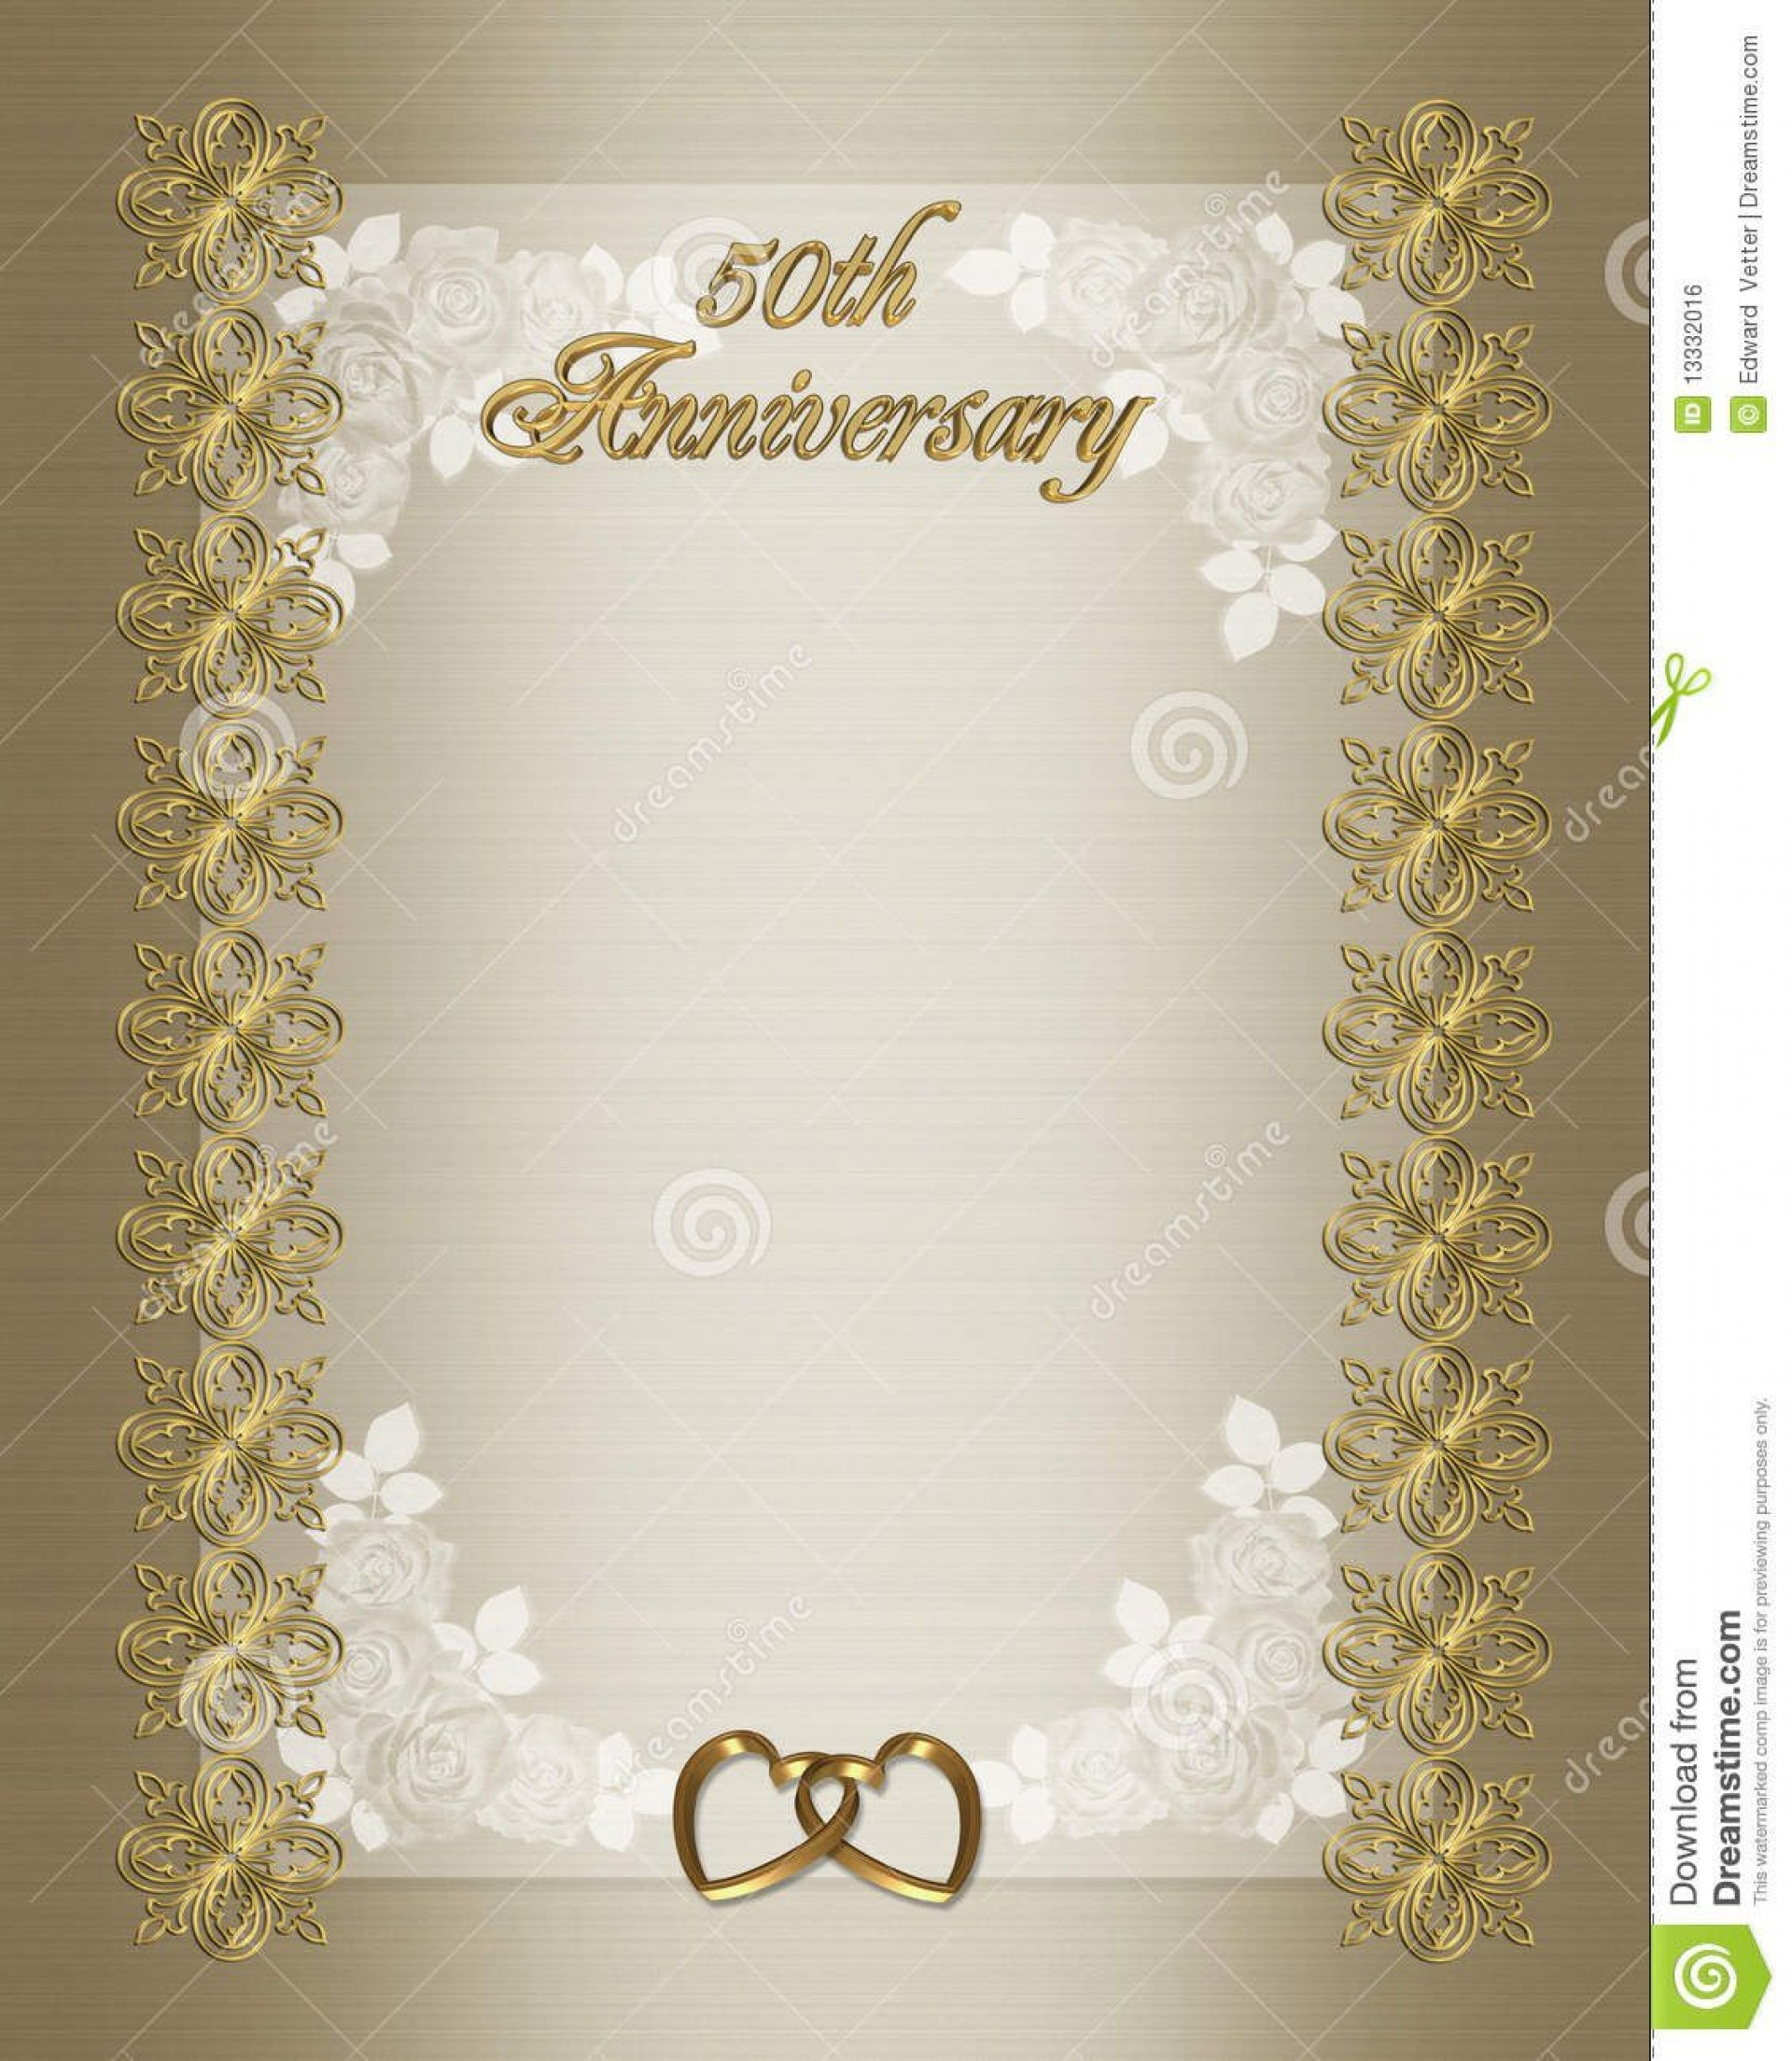 006 Outstanding 50th Anniversary Invitation Template Free Download Highest Quality  Golden Wedding1920